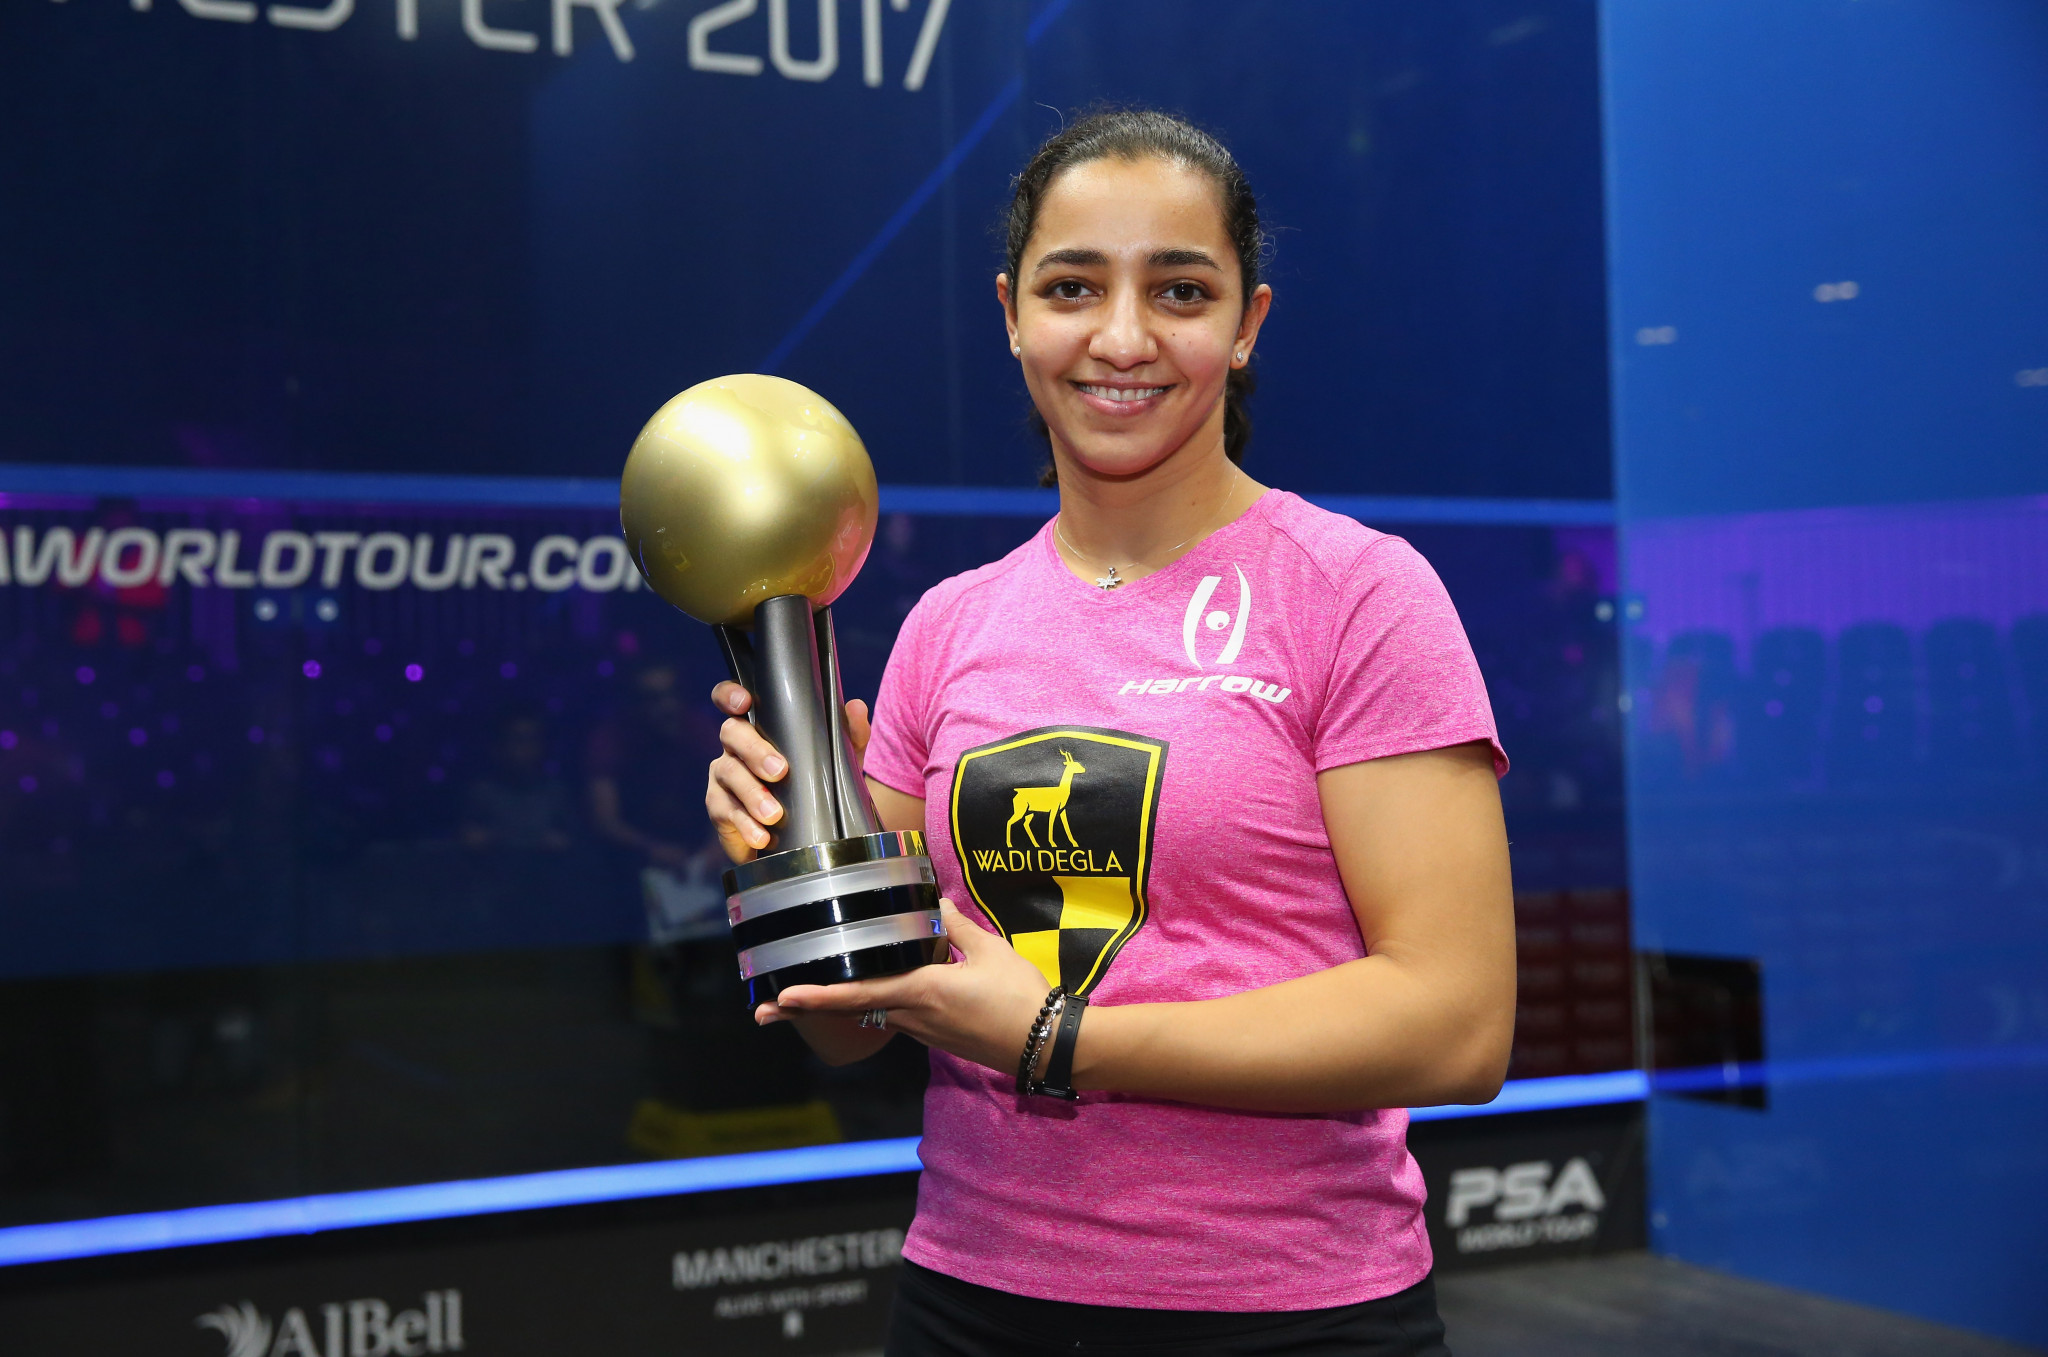 World number one El Welily announces immediate retirement from squash